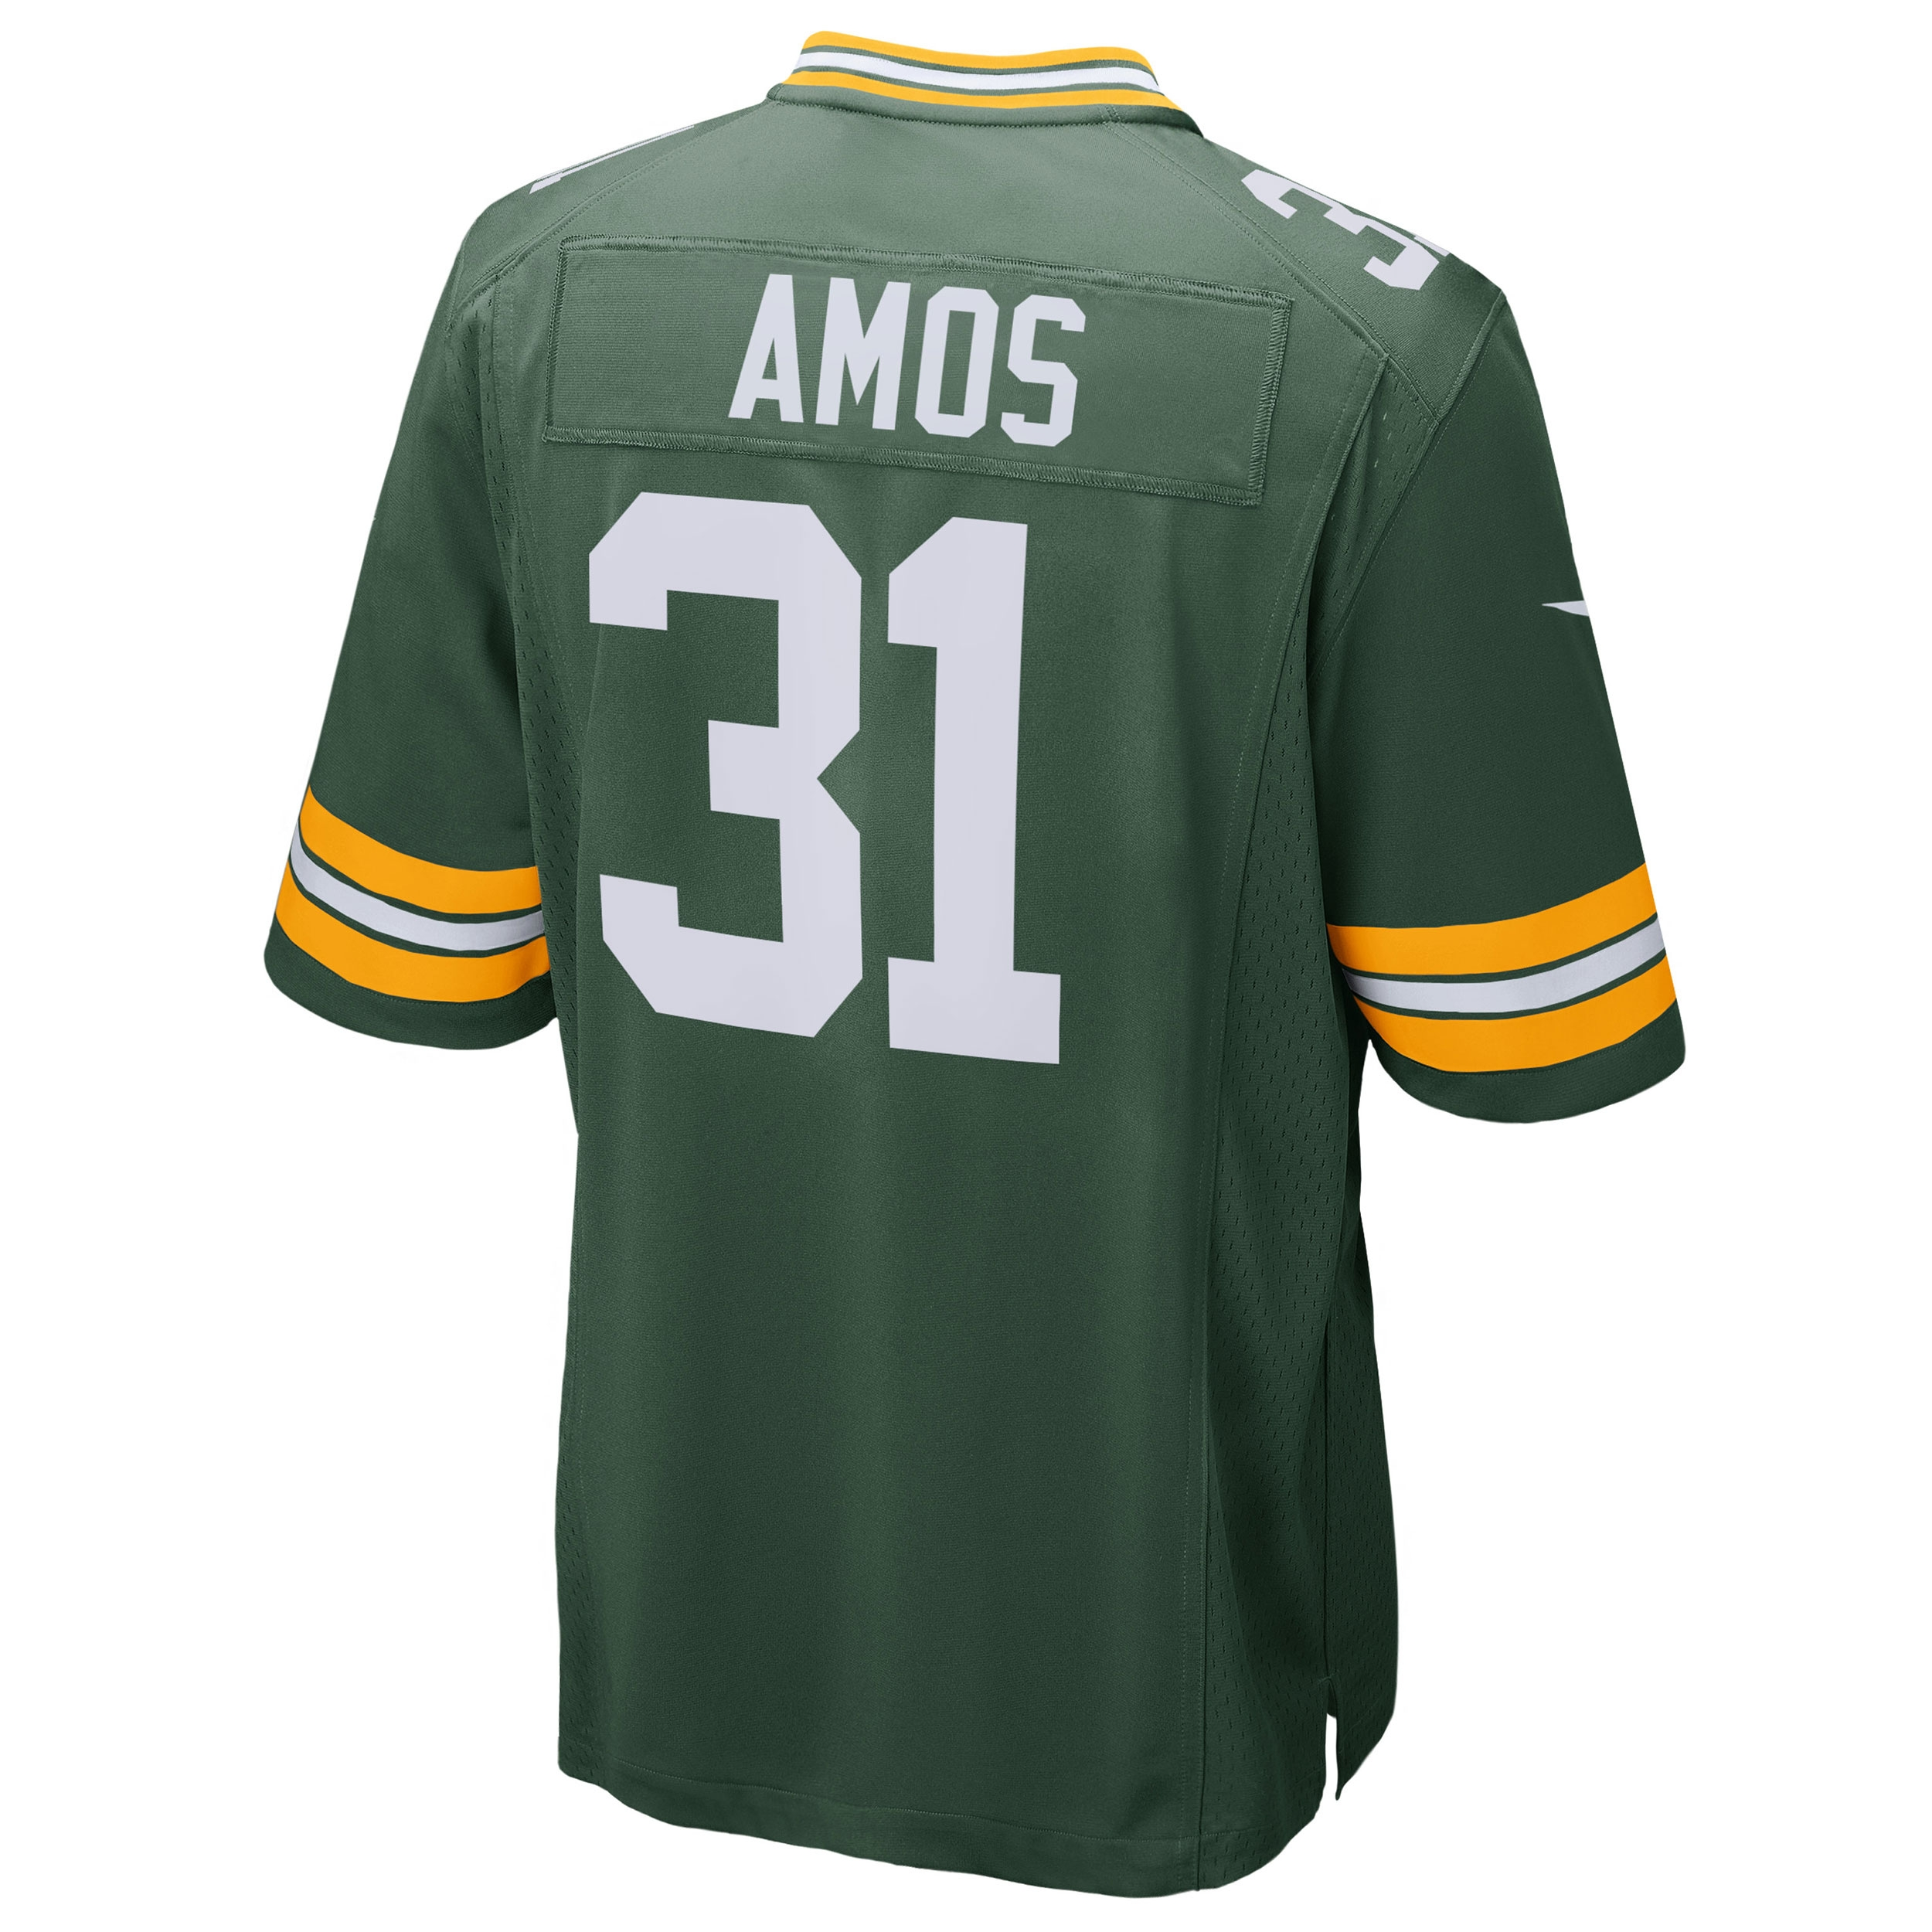 #31 Adrian Amos Home Game Jersey